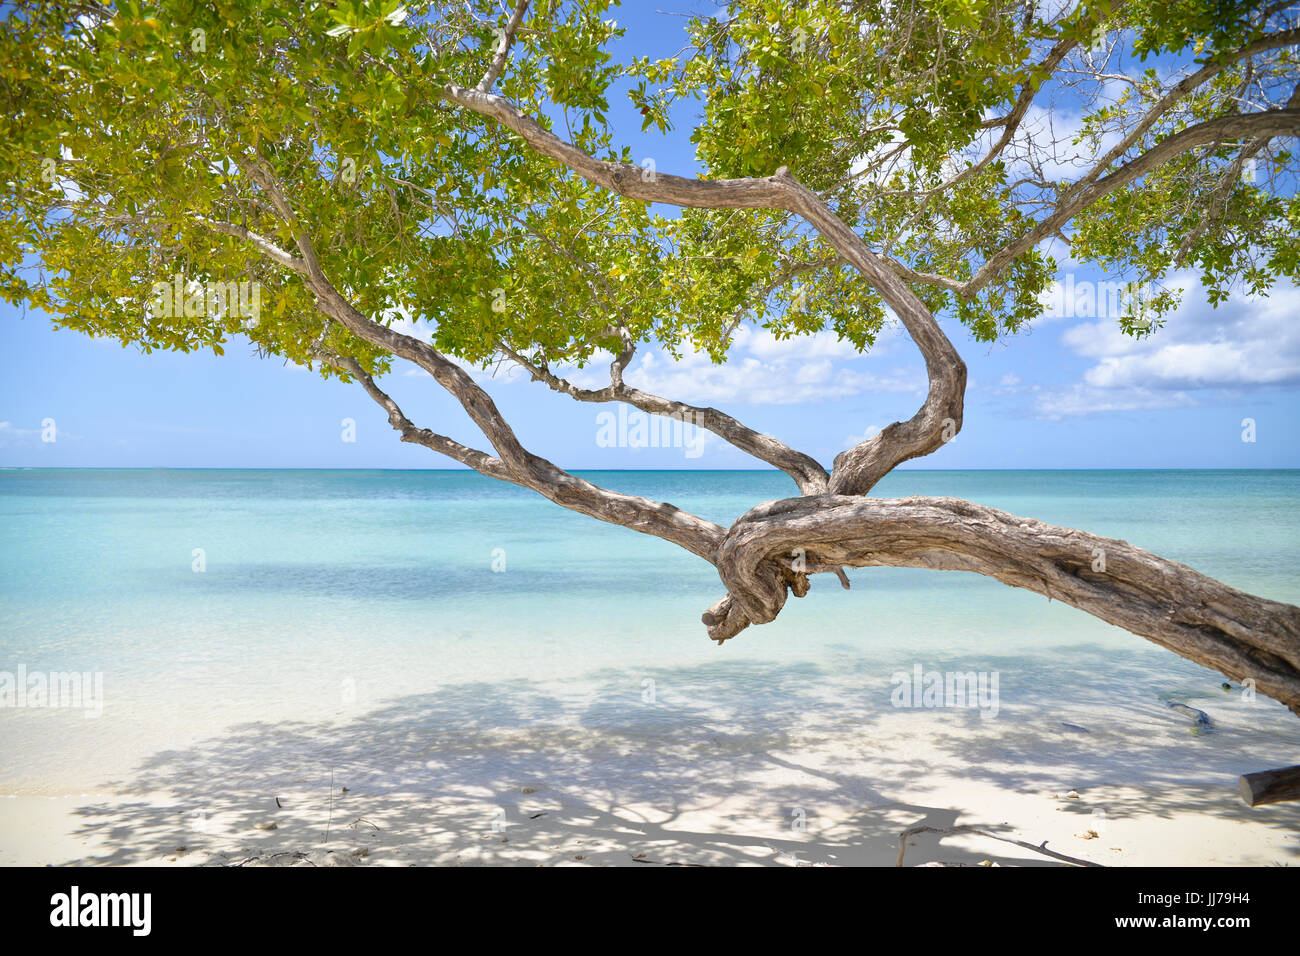 ocean view with tree on beach in aruba, caribbean - Stock Image